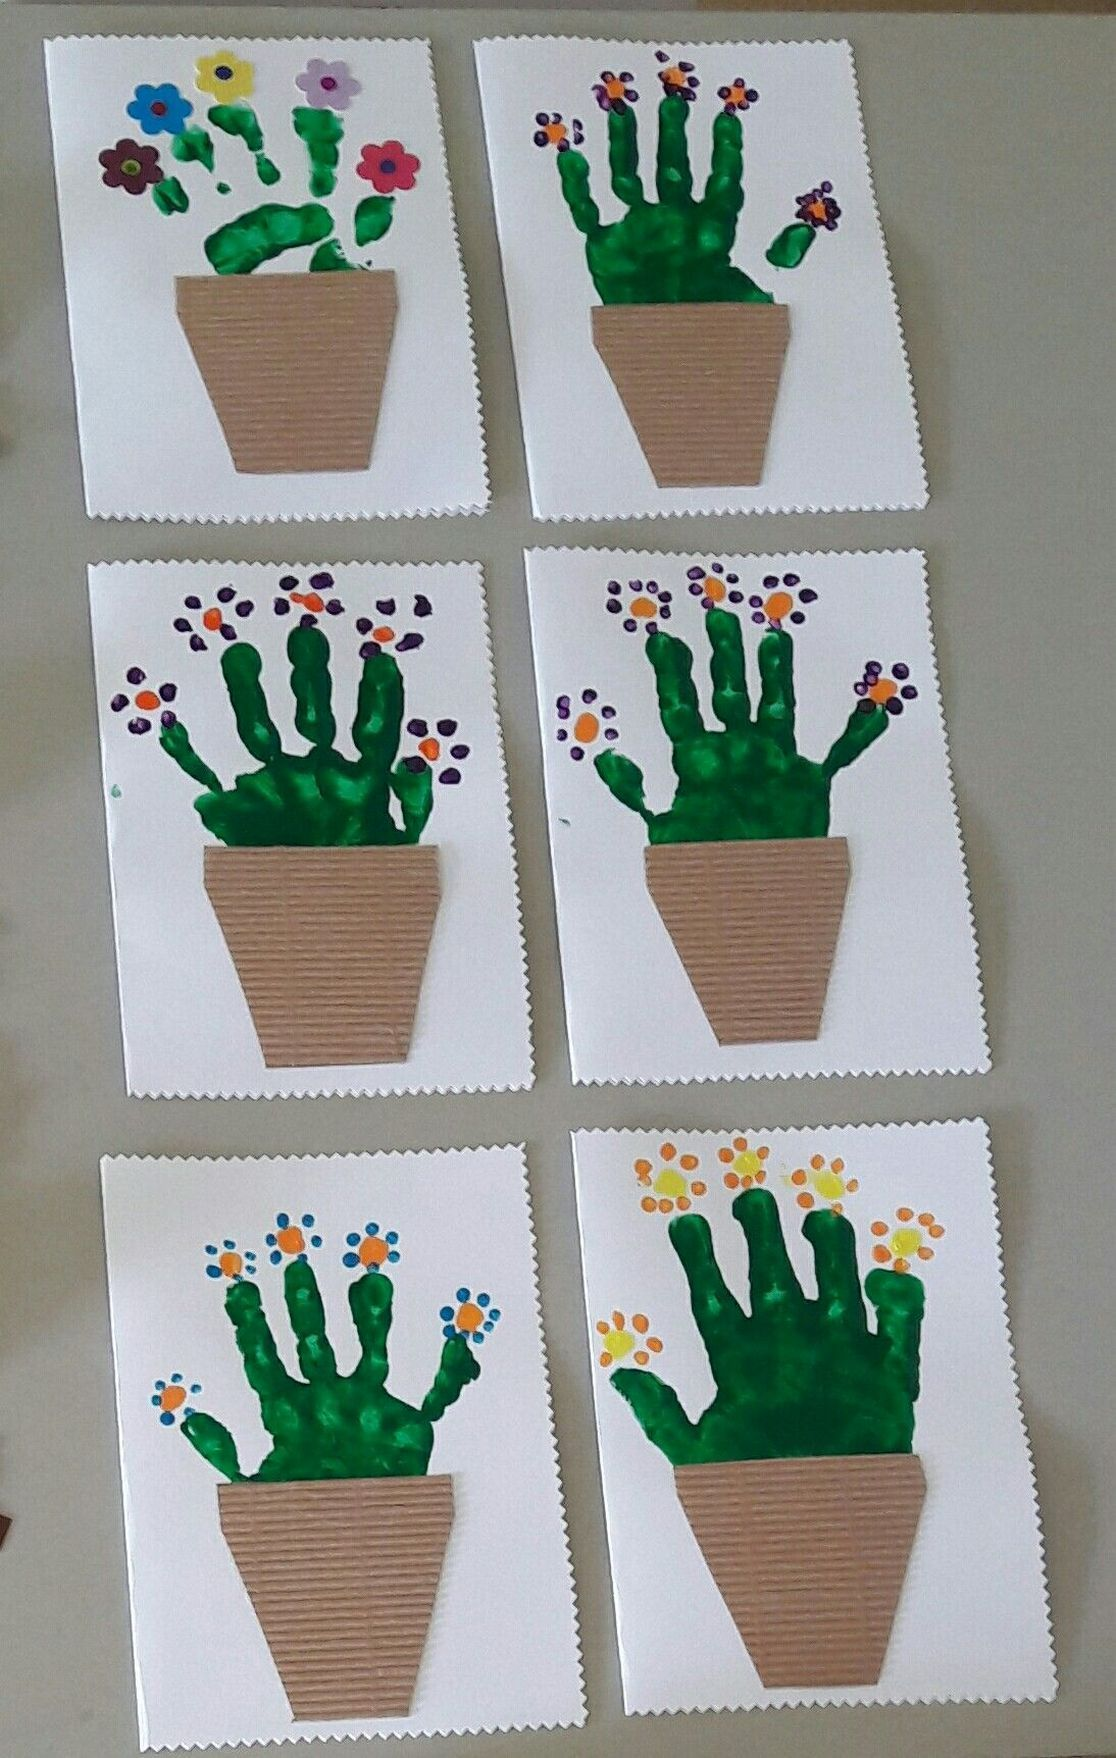 Spring crafts preschool creative art ideas 35 | Summer ...